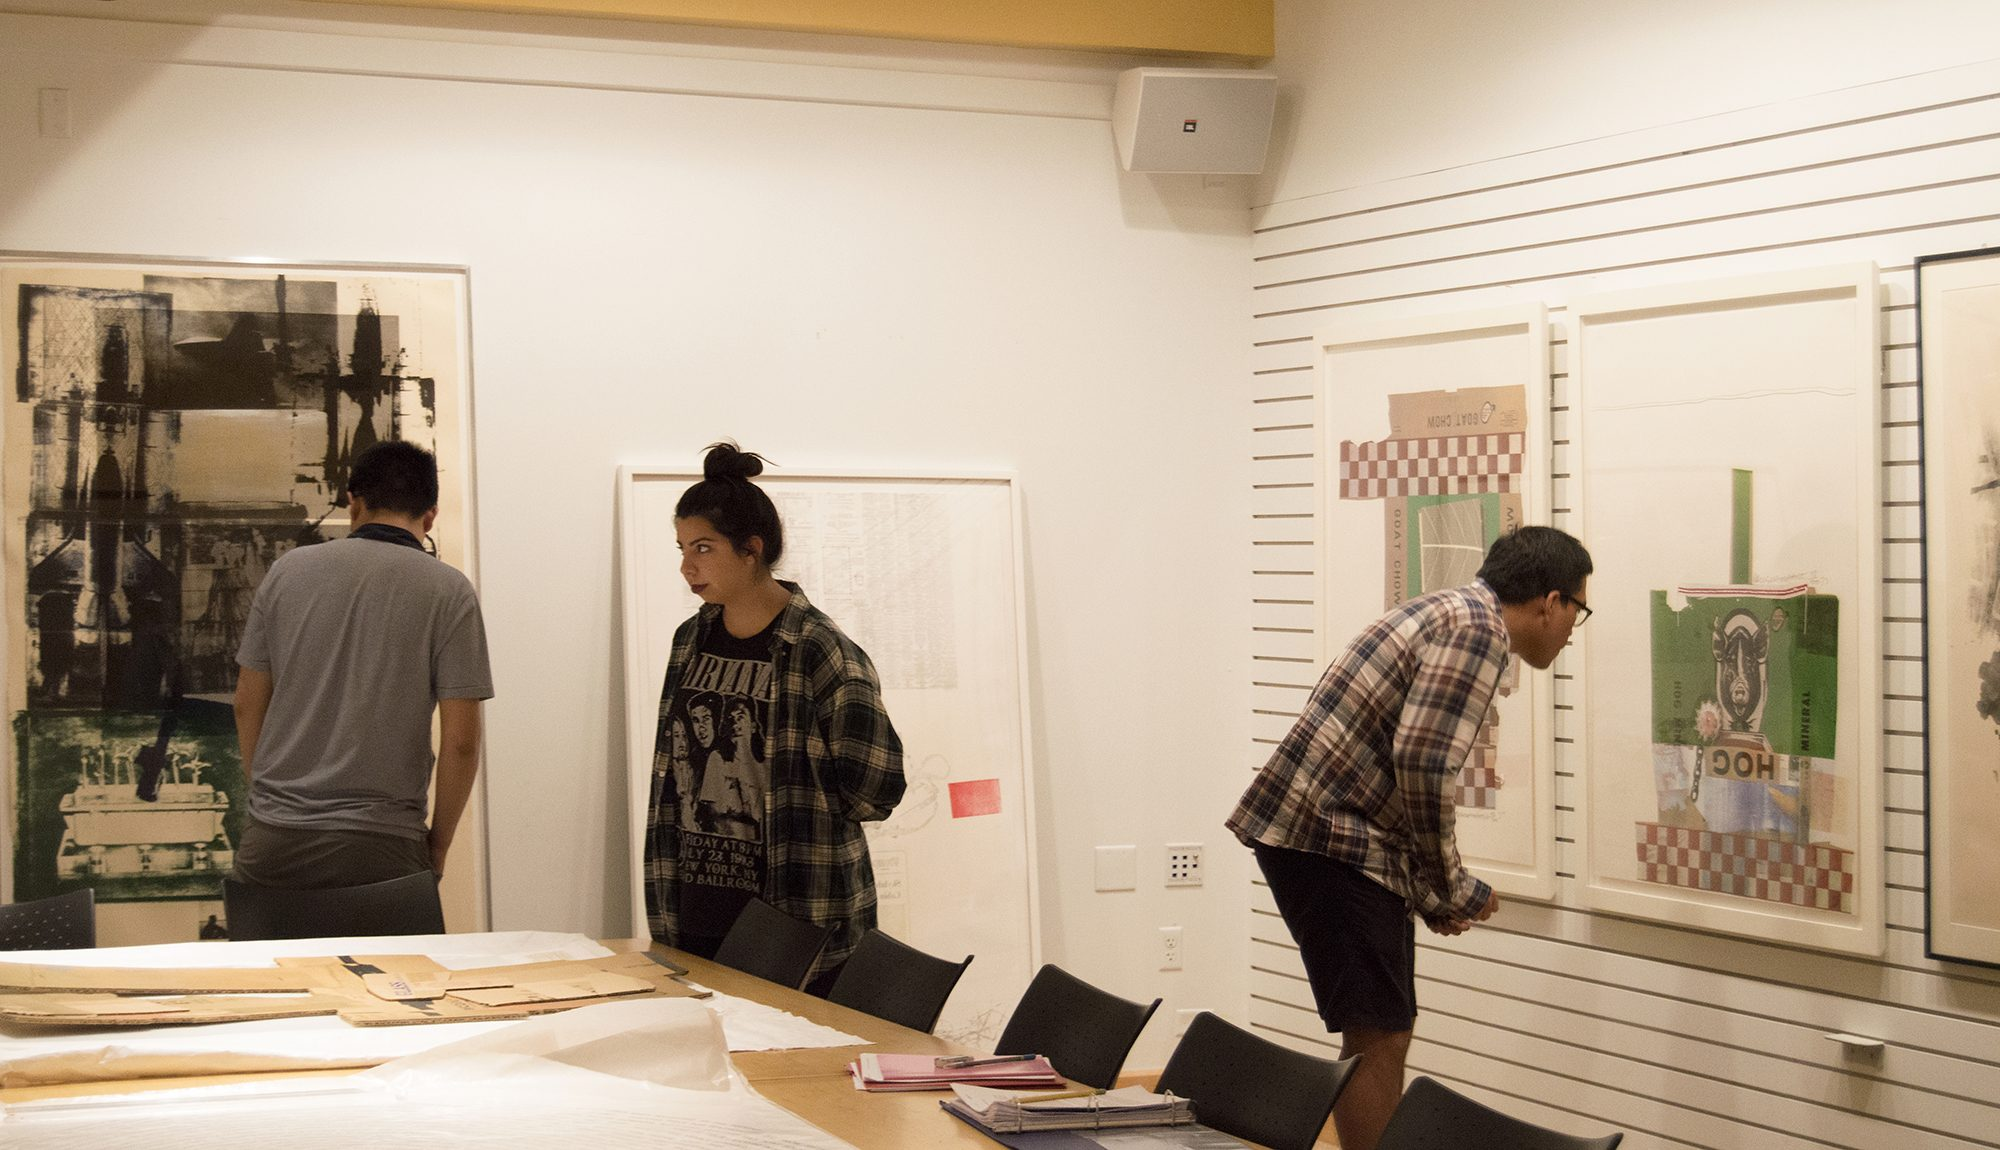 Students in the Rauschenberg Course